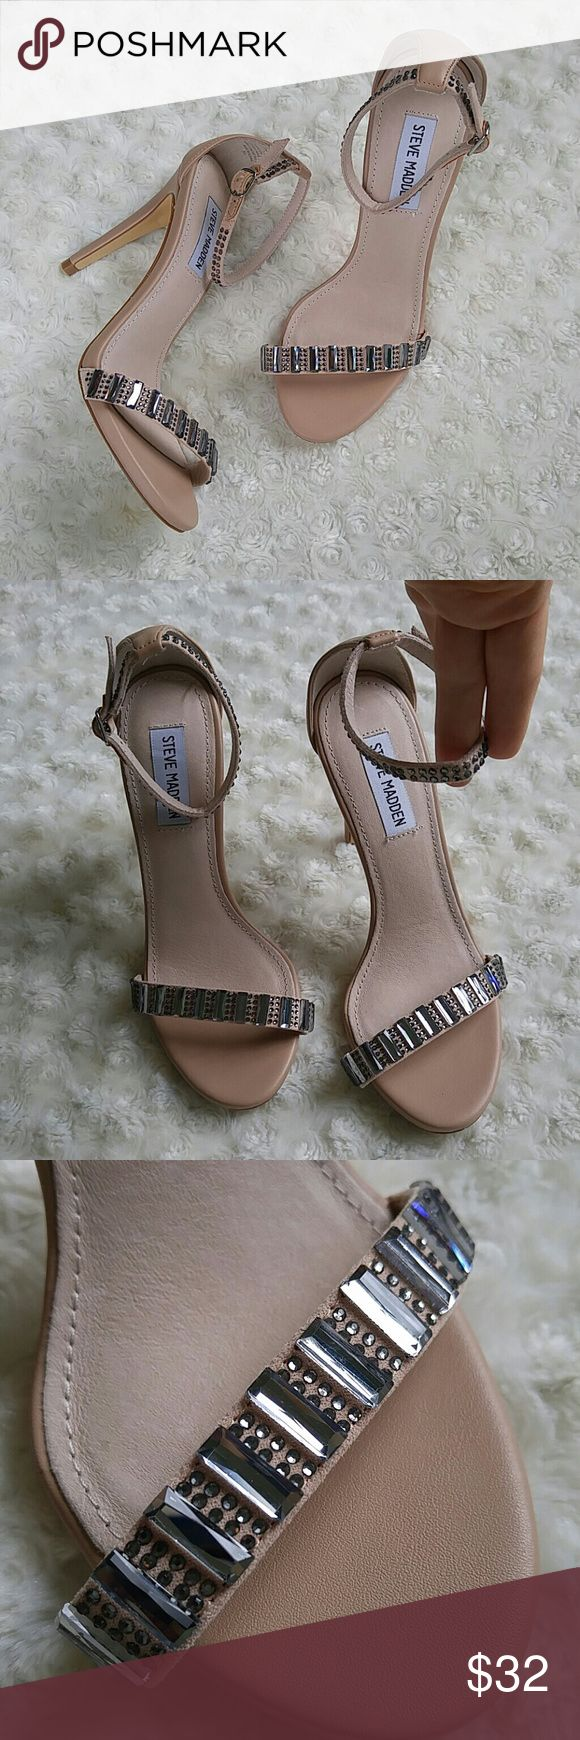 """Stunning Steve Madden Suzzana nude heels I bought these from another posher to wear at Poshfest to the Rebecca Minkoff party and I arrived to late to LA to make it.   These are gorgeous!!!! So sexy and sparkly. 4"""" heel. Steve Madden Shoes Heels"""